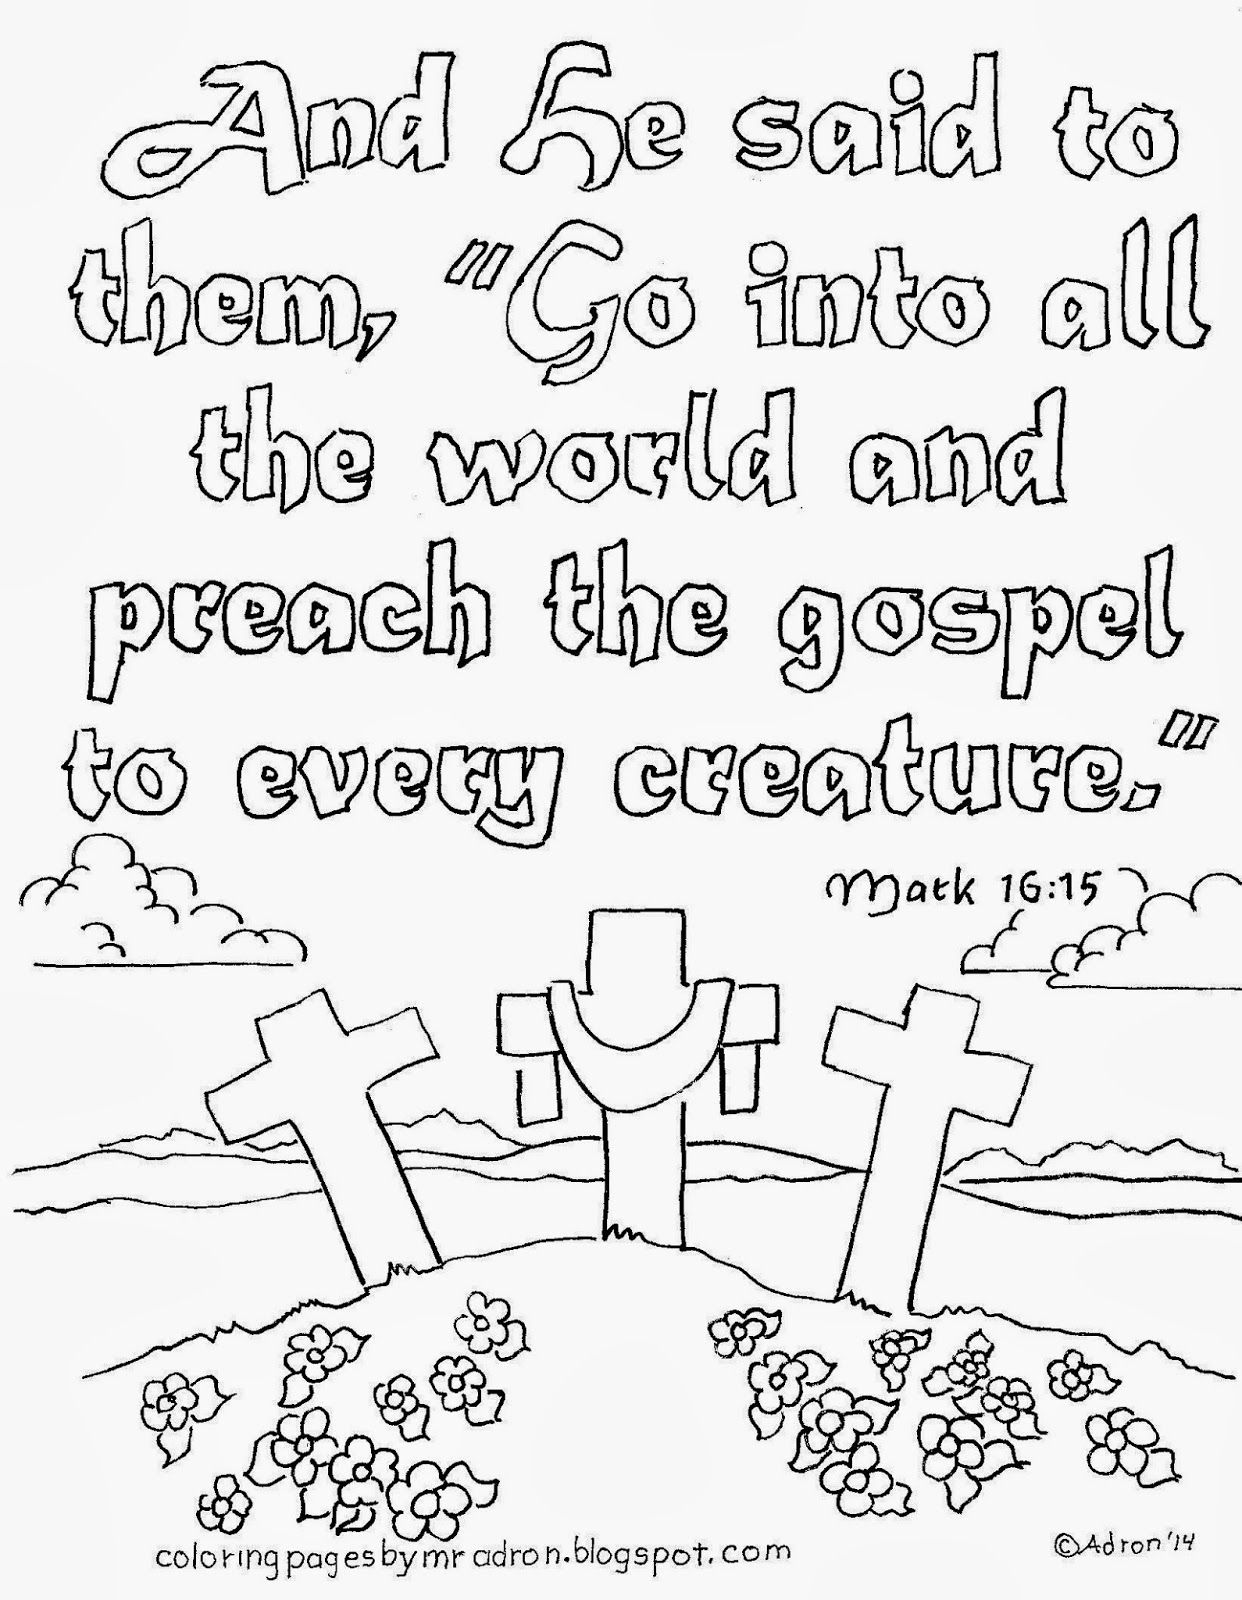 coloring pages for kids by mr adron go preach the gospel free